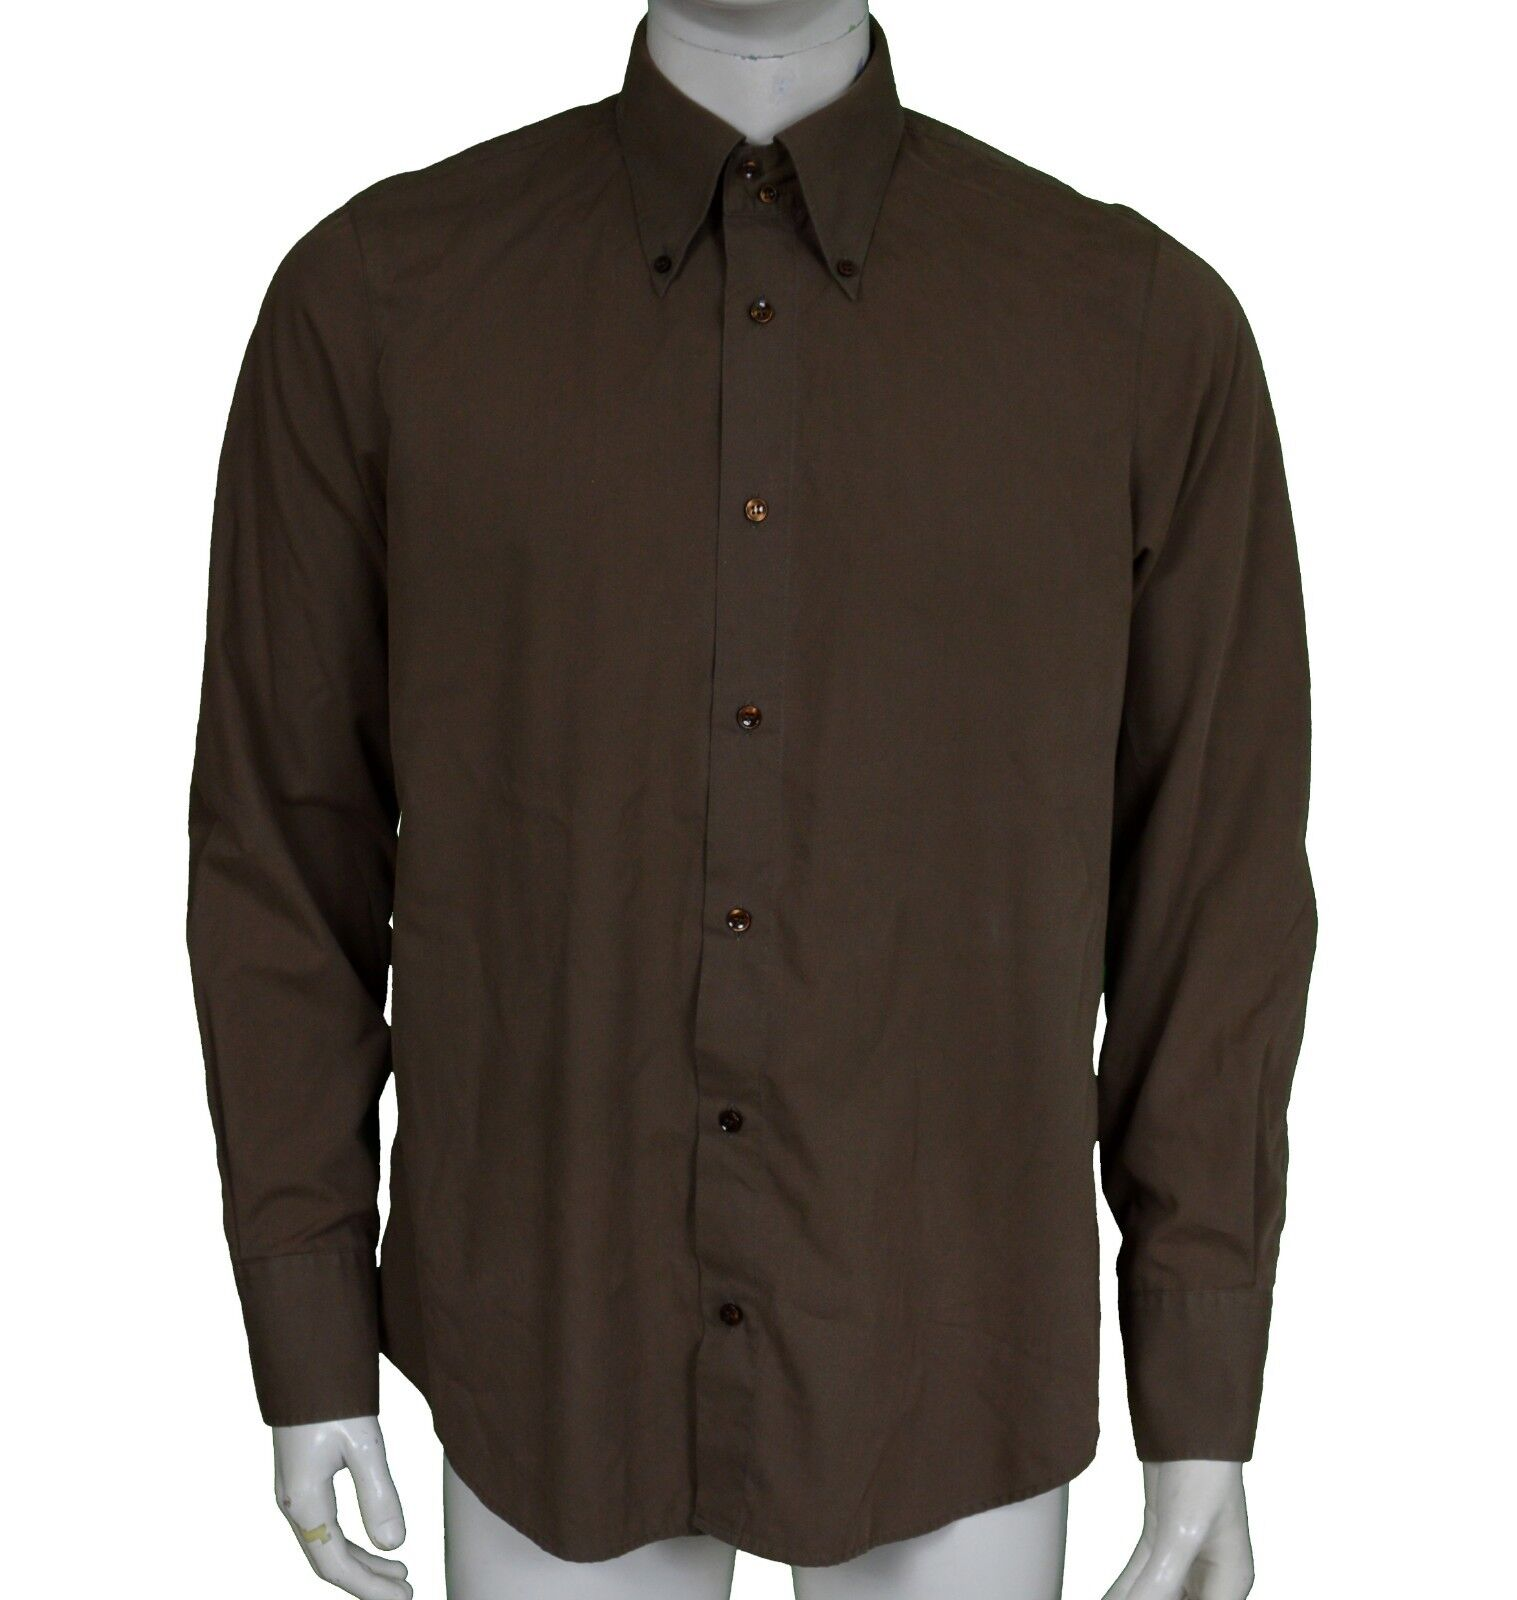 Armani AJ Armani Jeans Long Sleeve Brown Shirt Men's Size XL